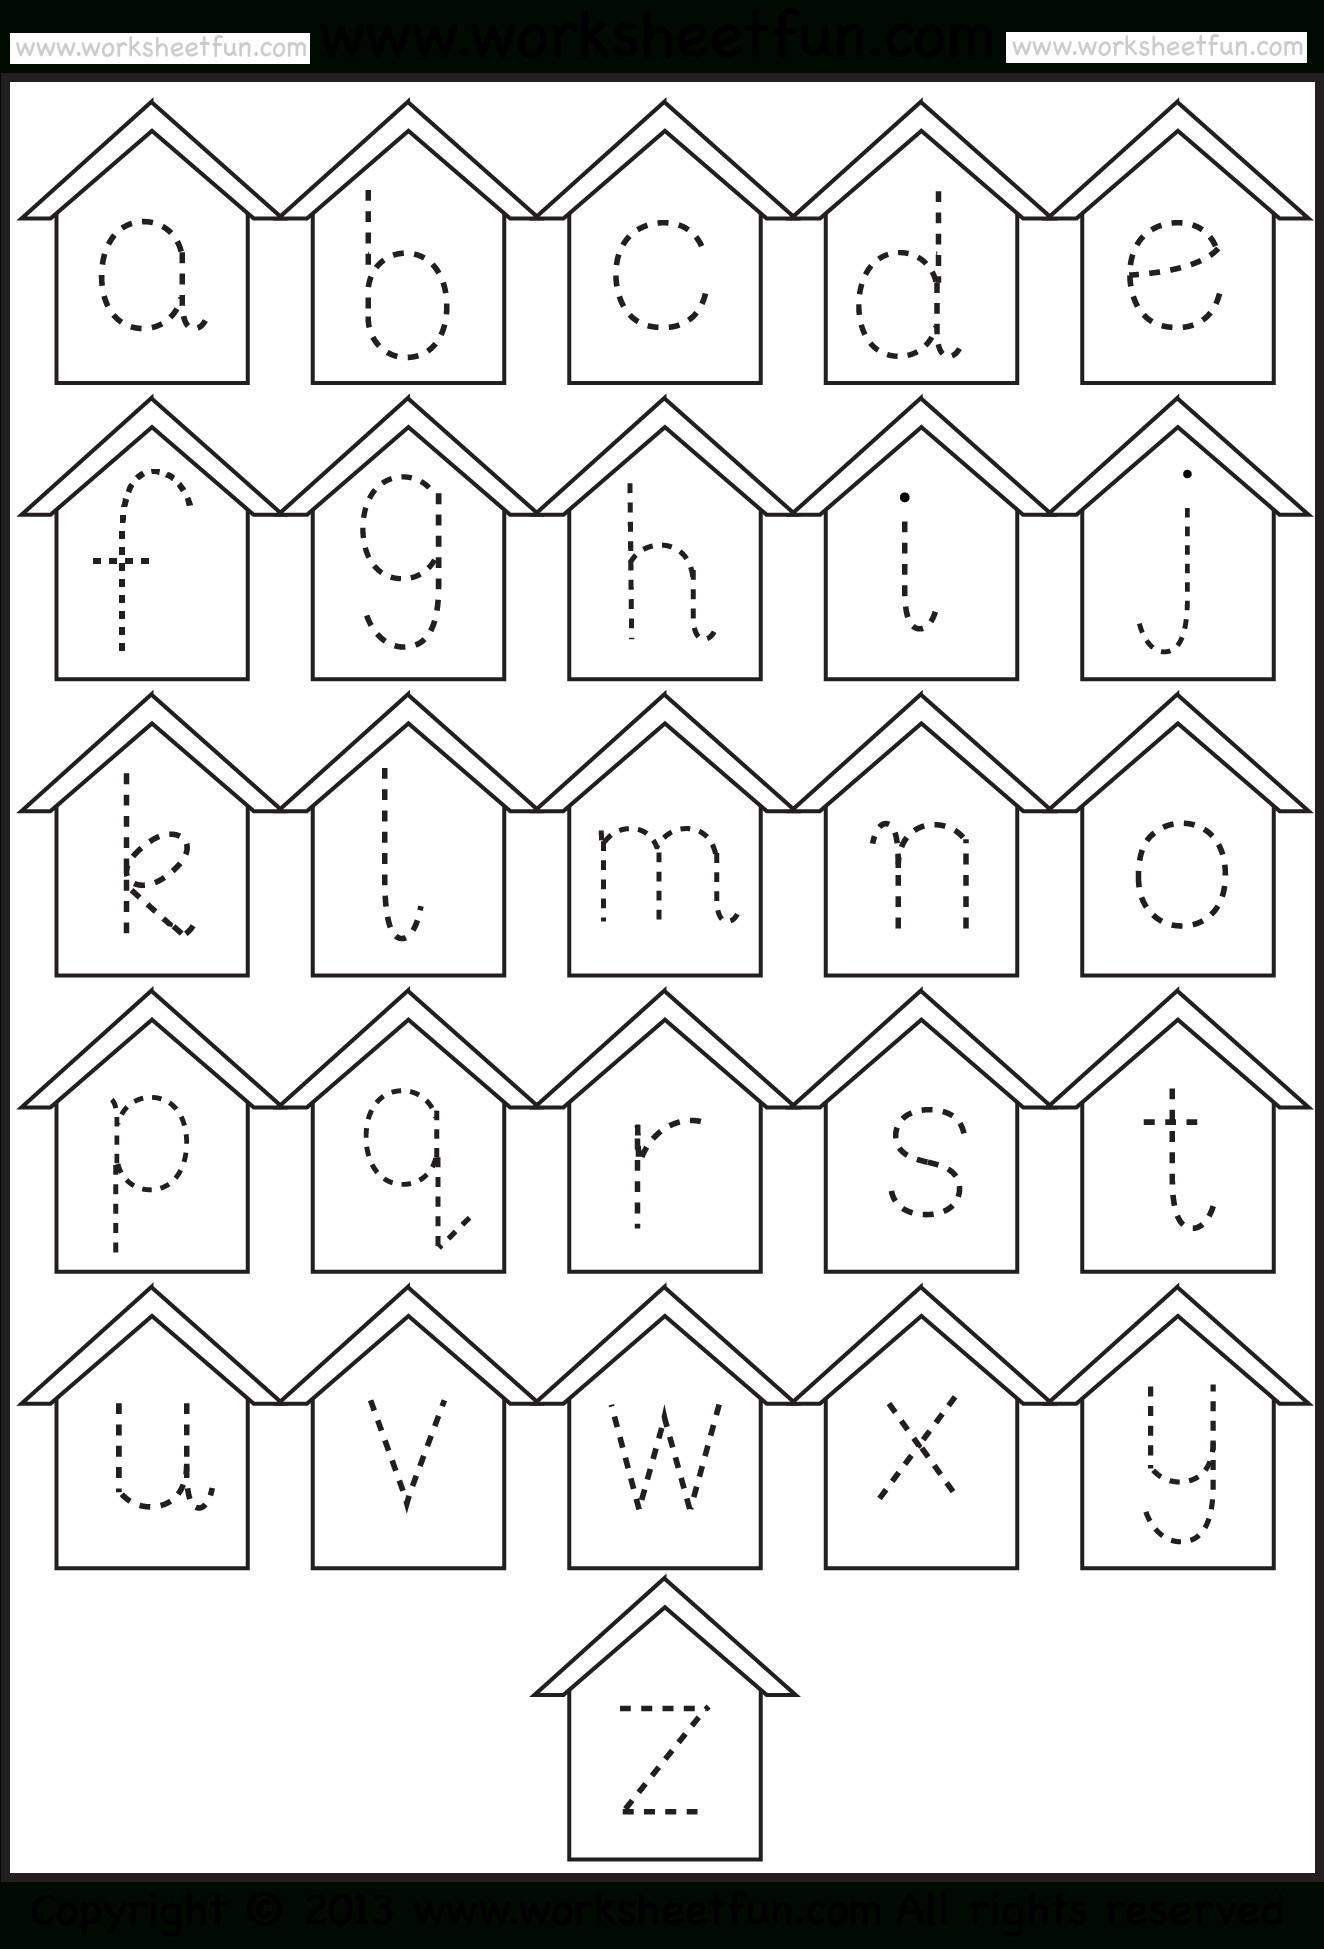 Tracing Lowercase Letters Printable Worksheets Lower Case Letter Tracing Worksheet Printable Worksheets and